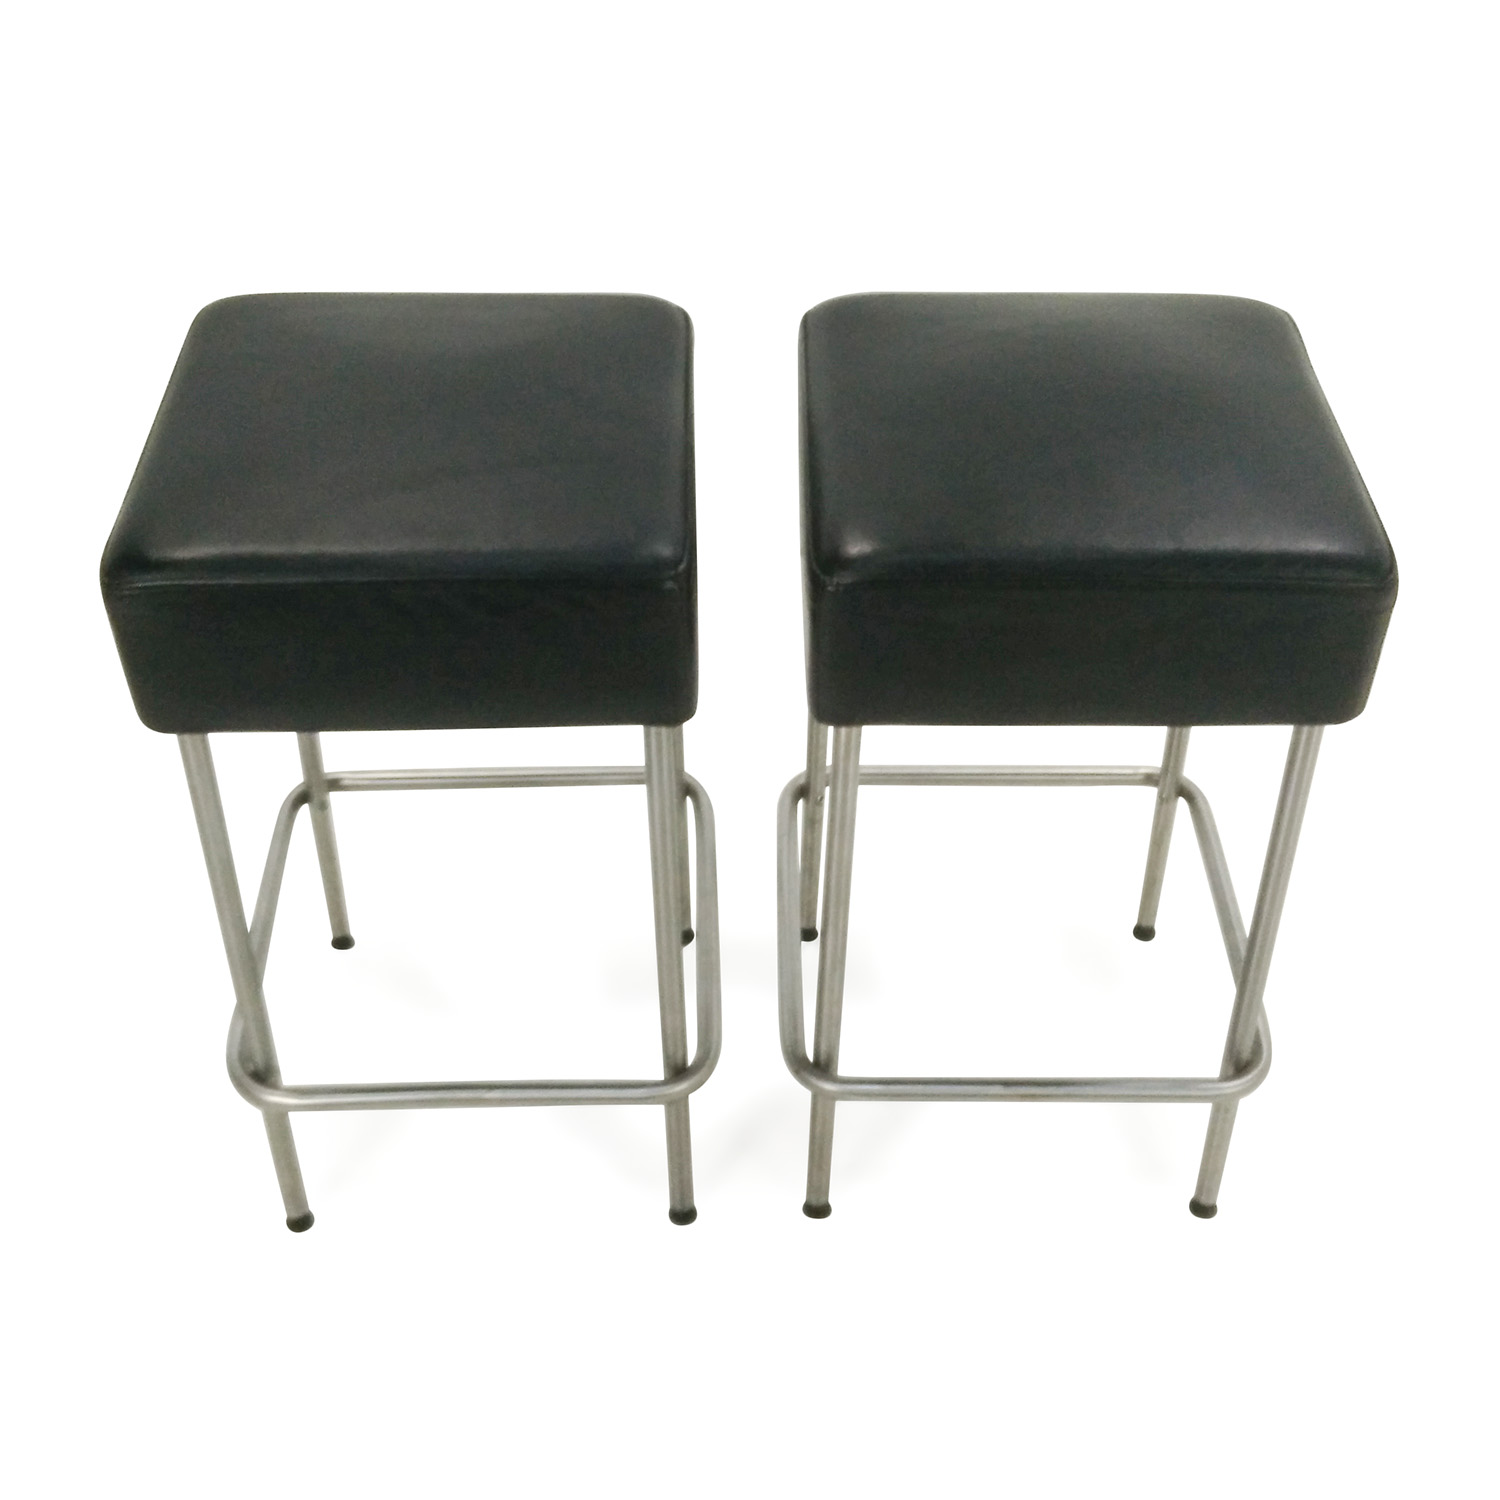 IKEA IKEA Black Faux Leather Bar Stools Black